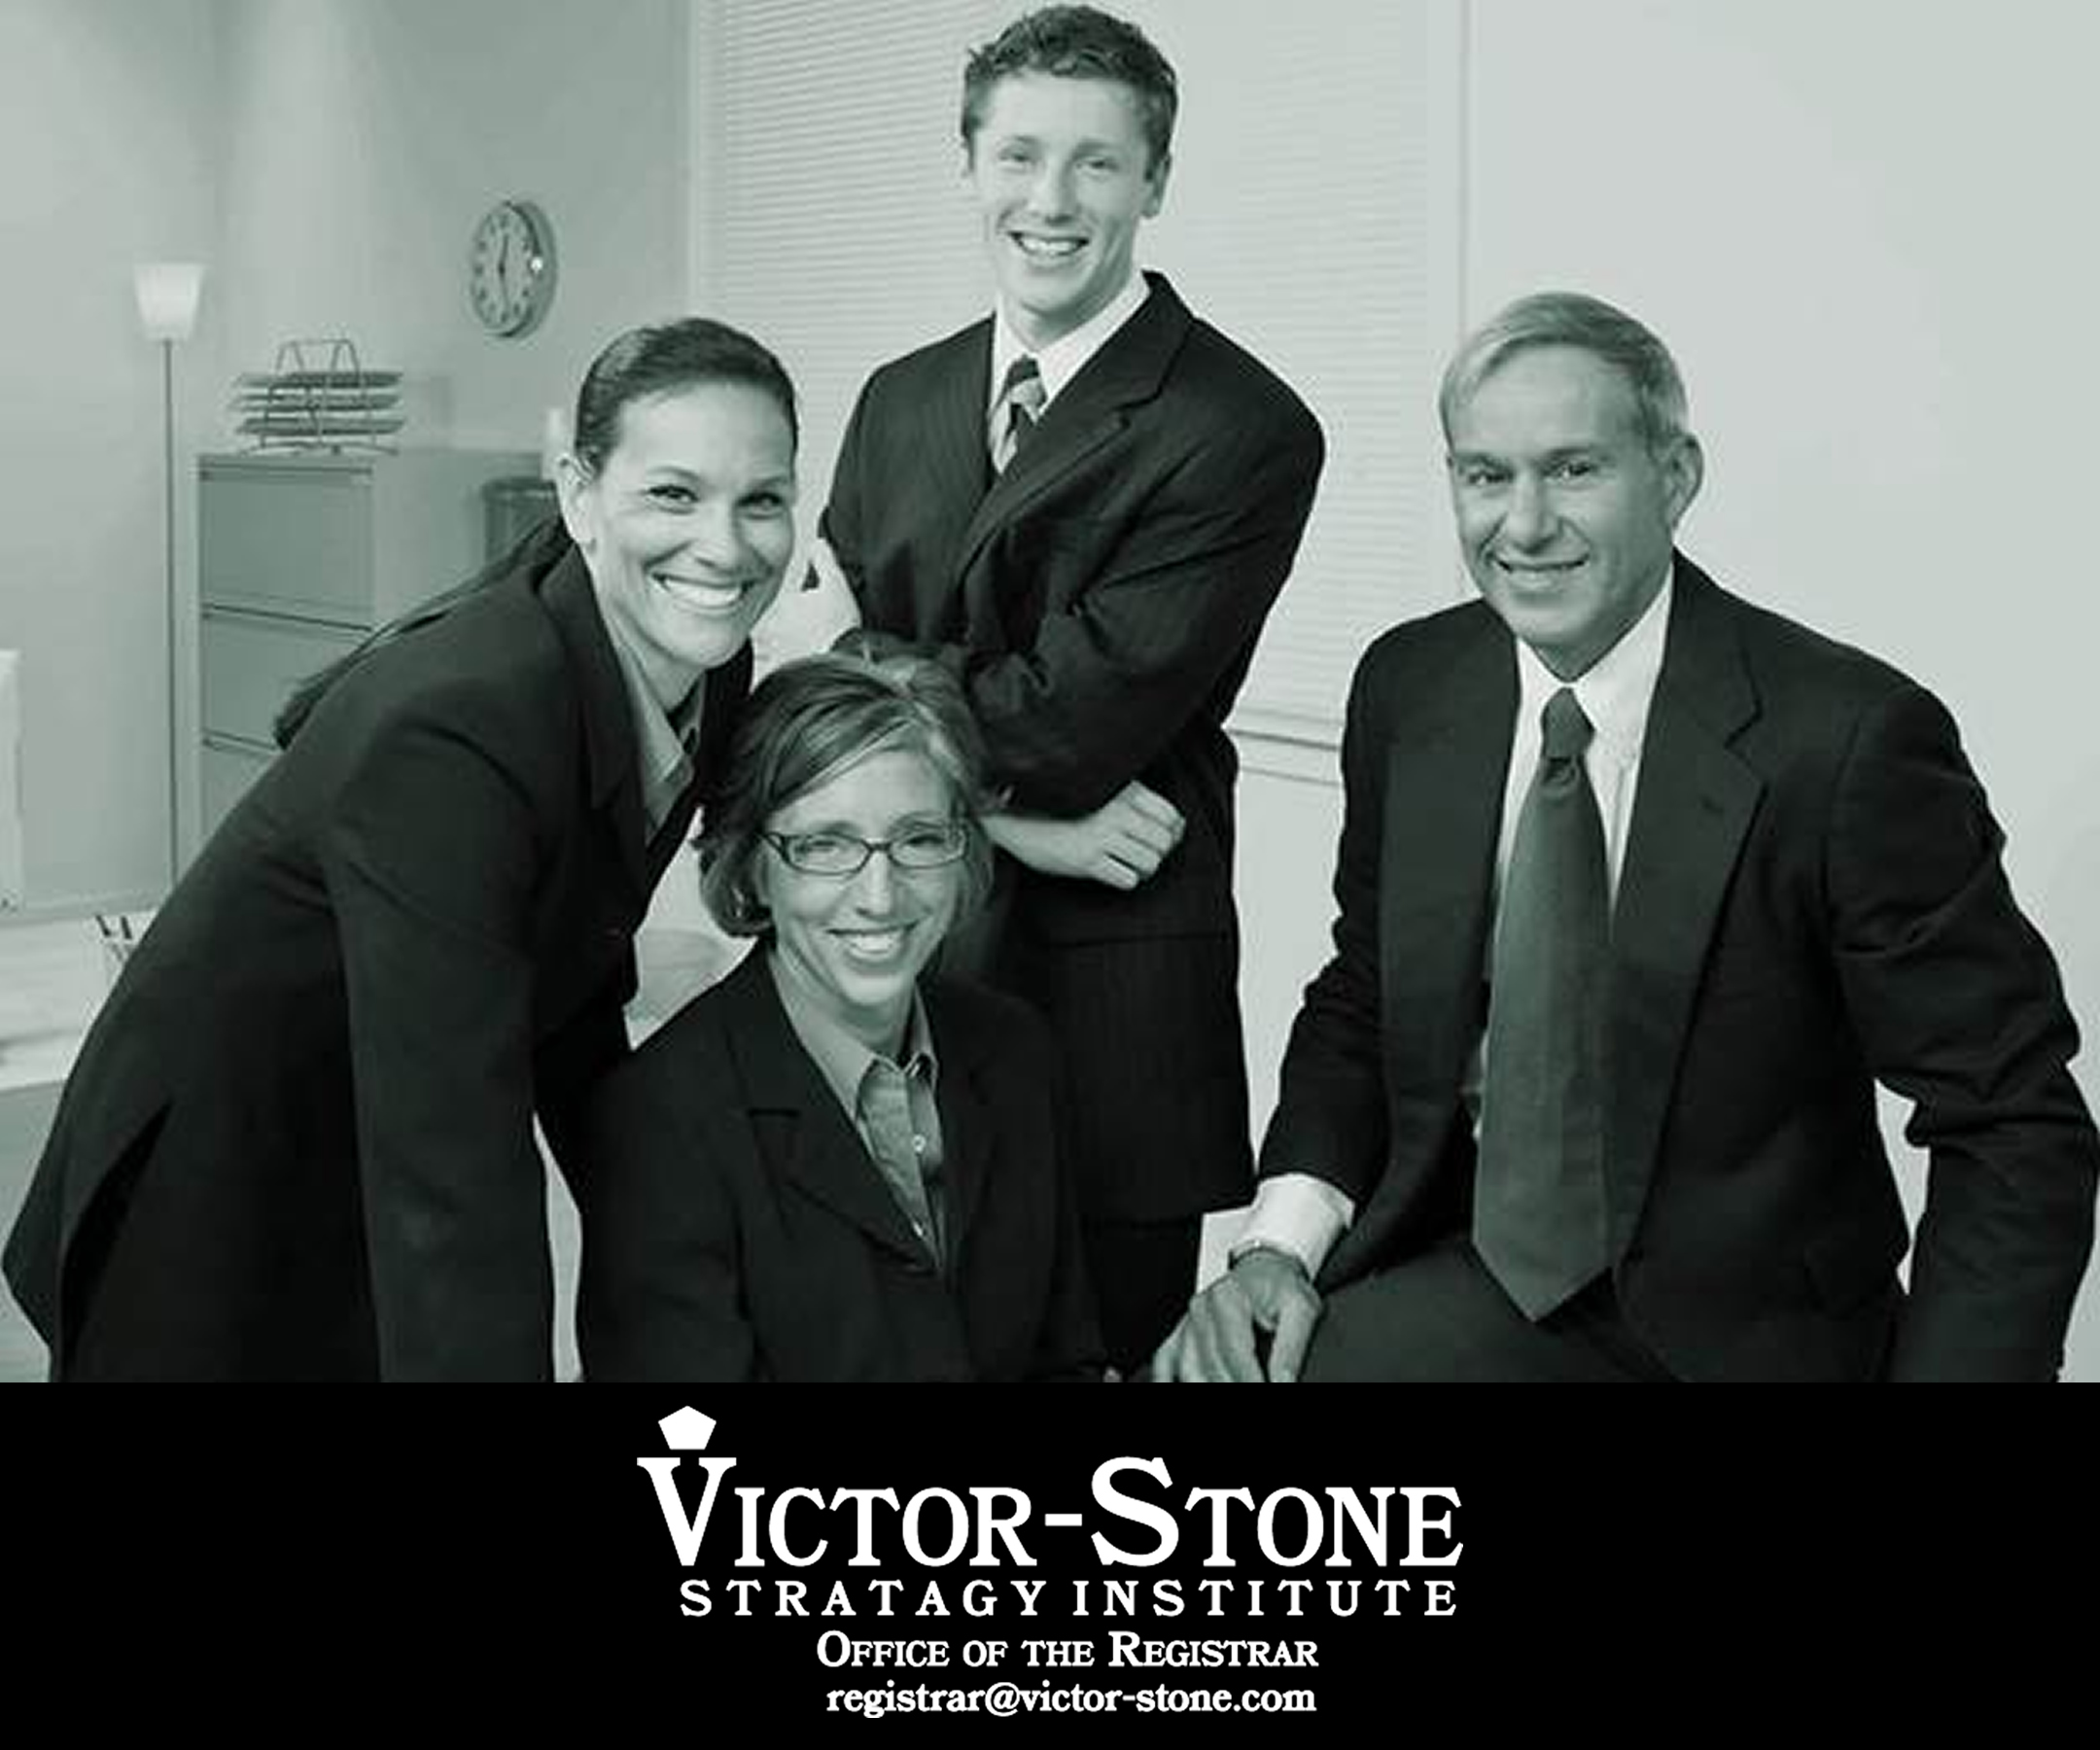 Victor-Stone Strategy Institute